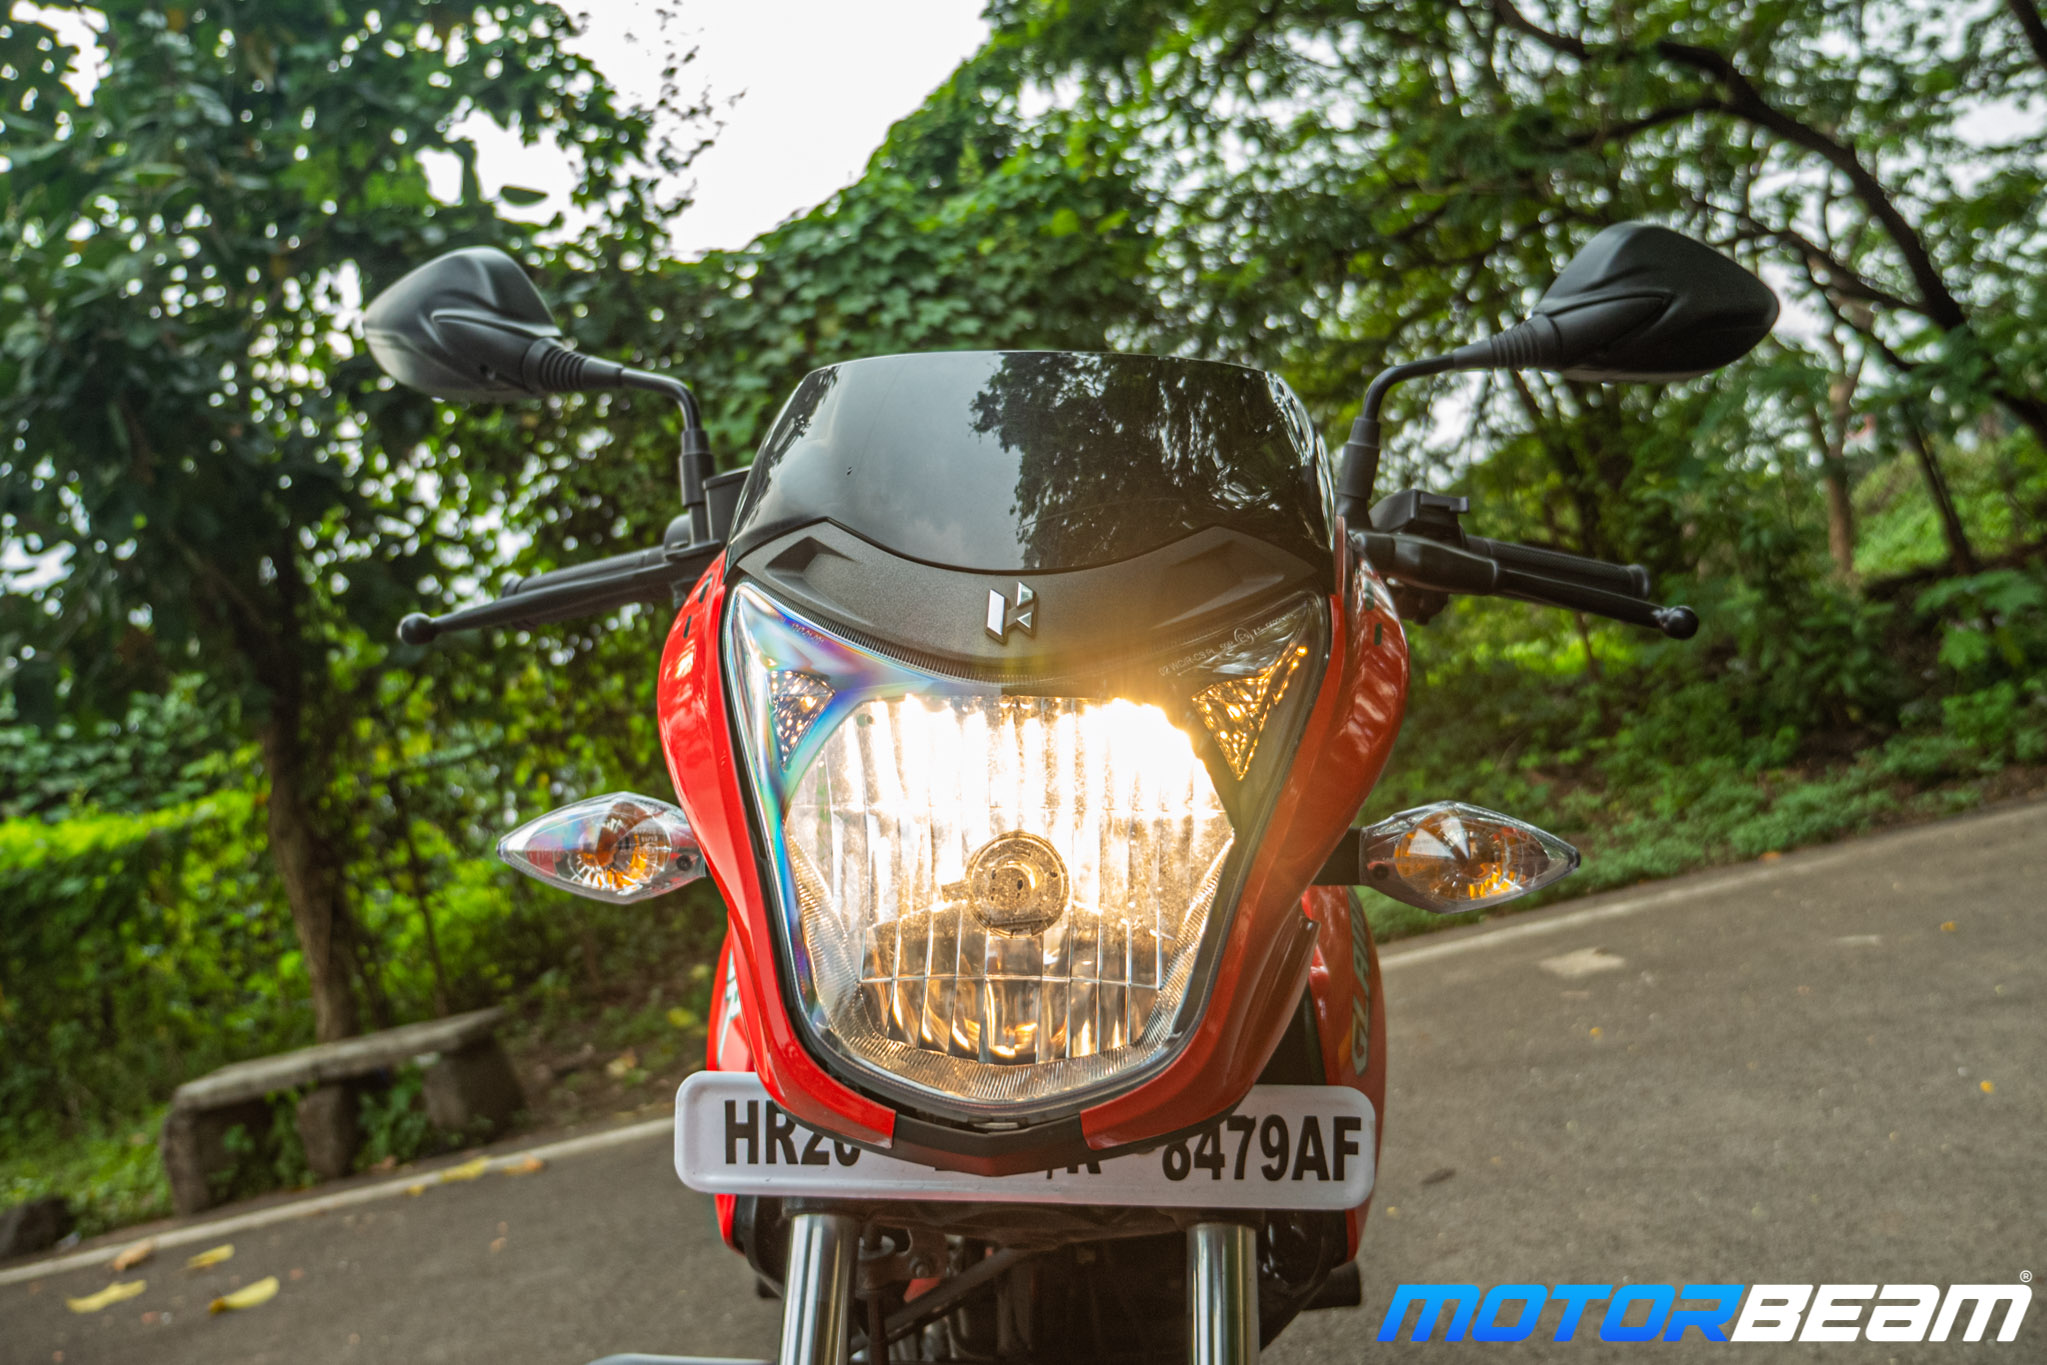 2020 Hero Glamour 125 Review 15